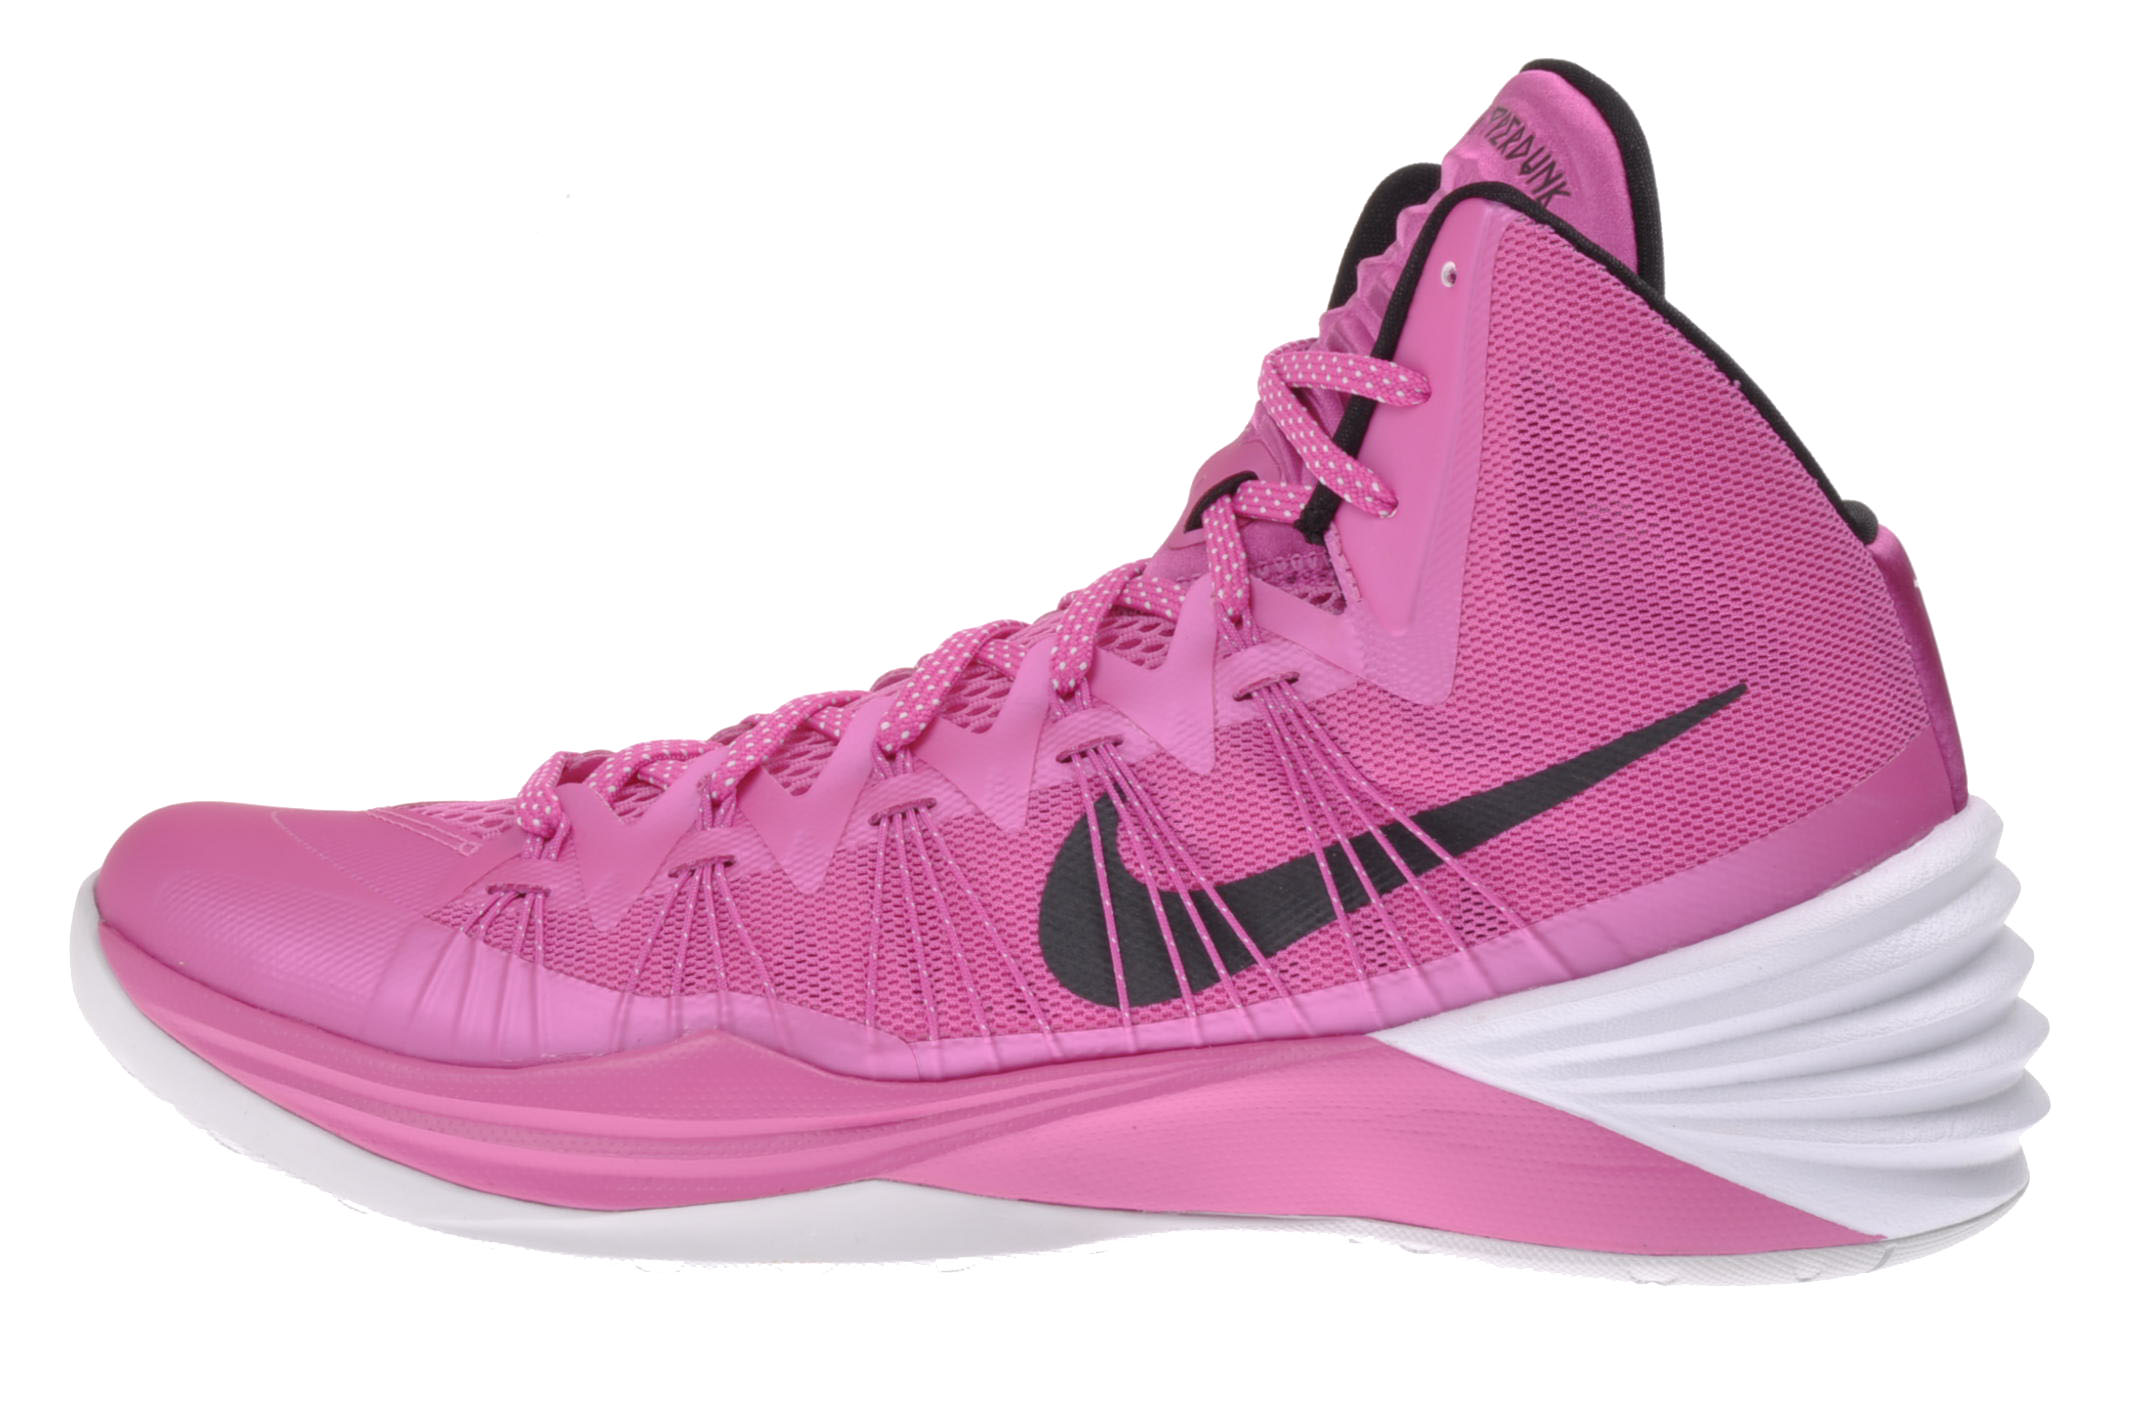 nike hyperdunk 2013 mens basketball shoes pink yow